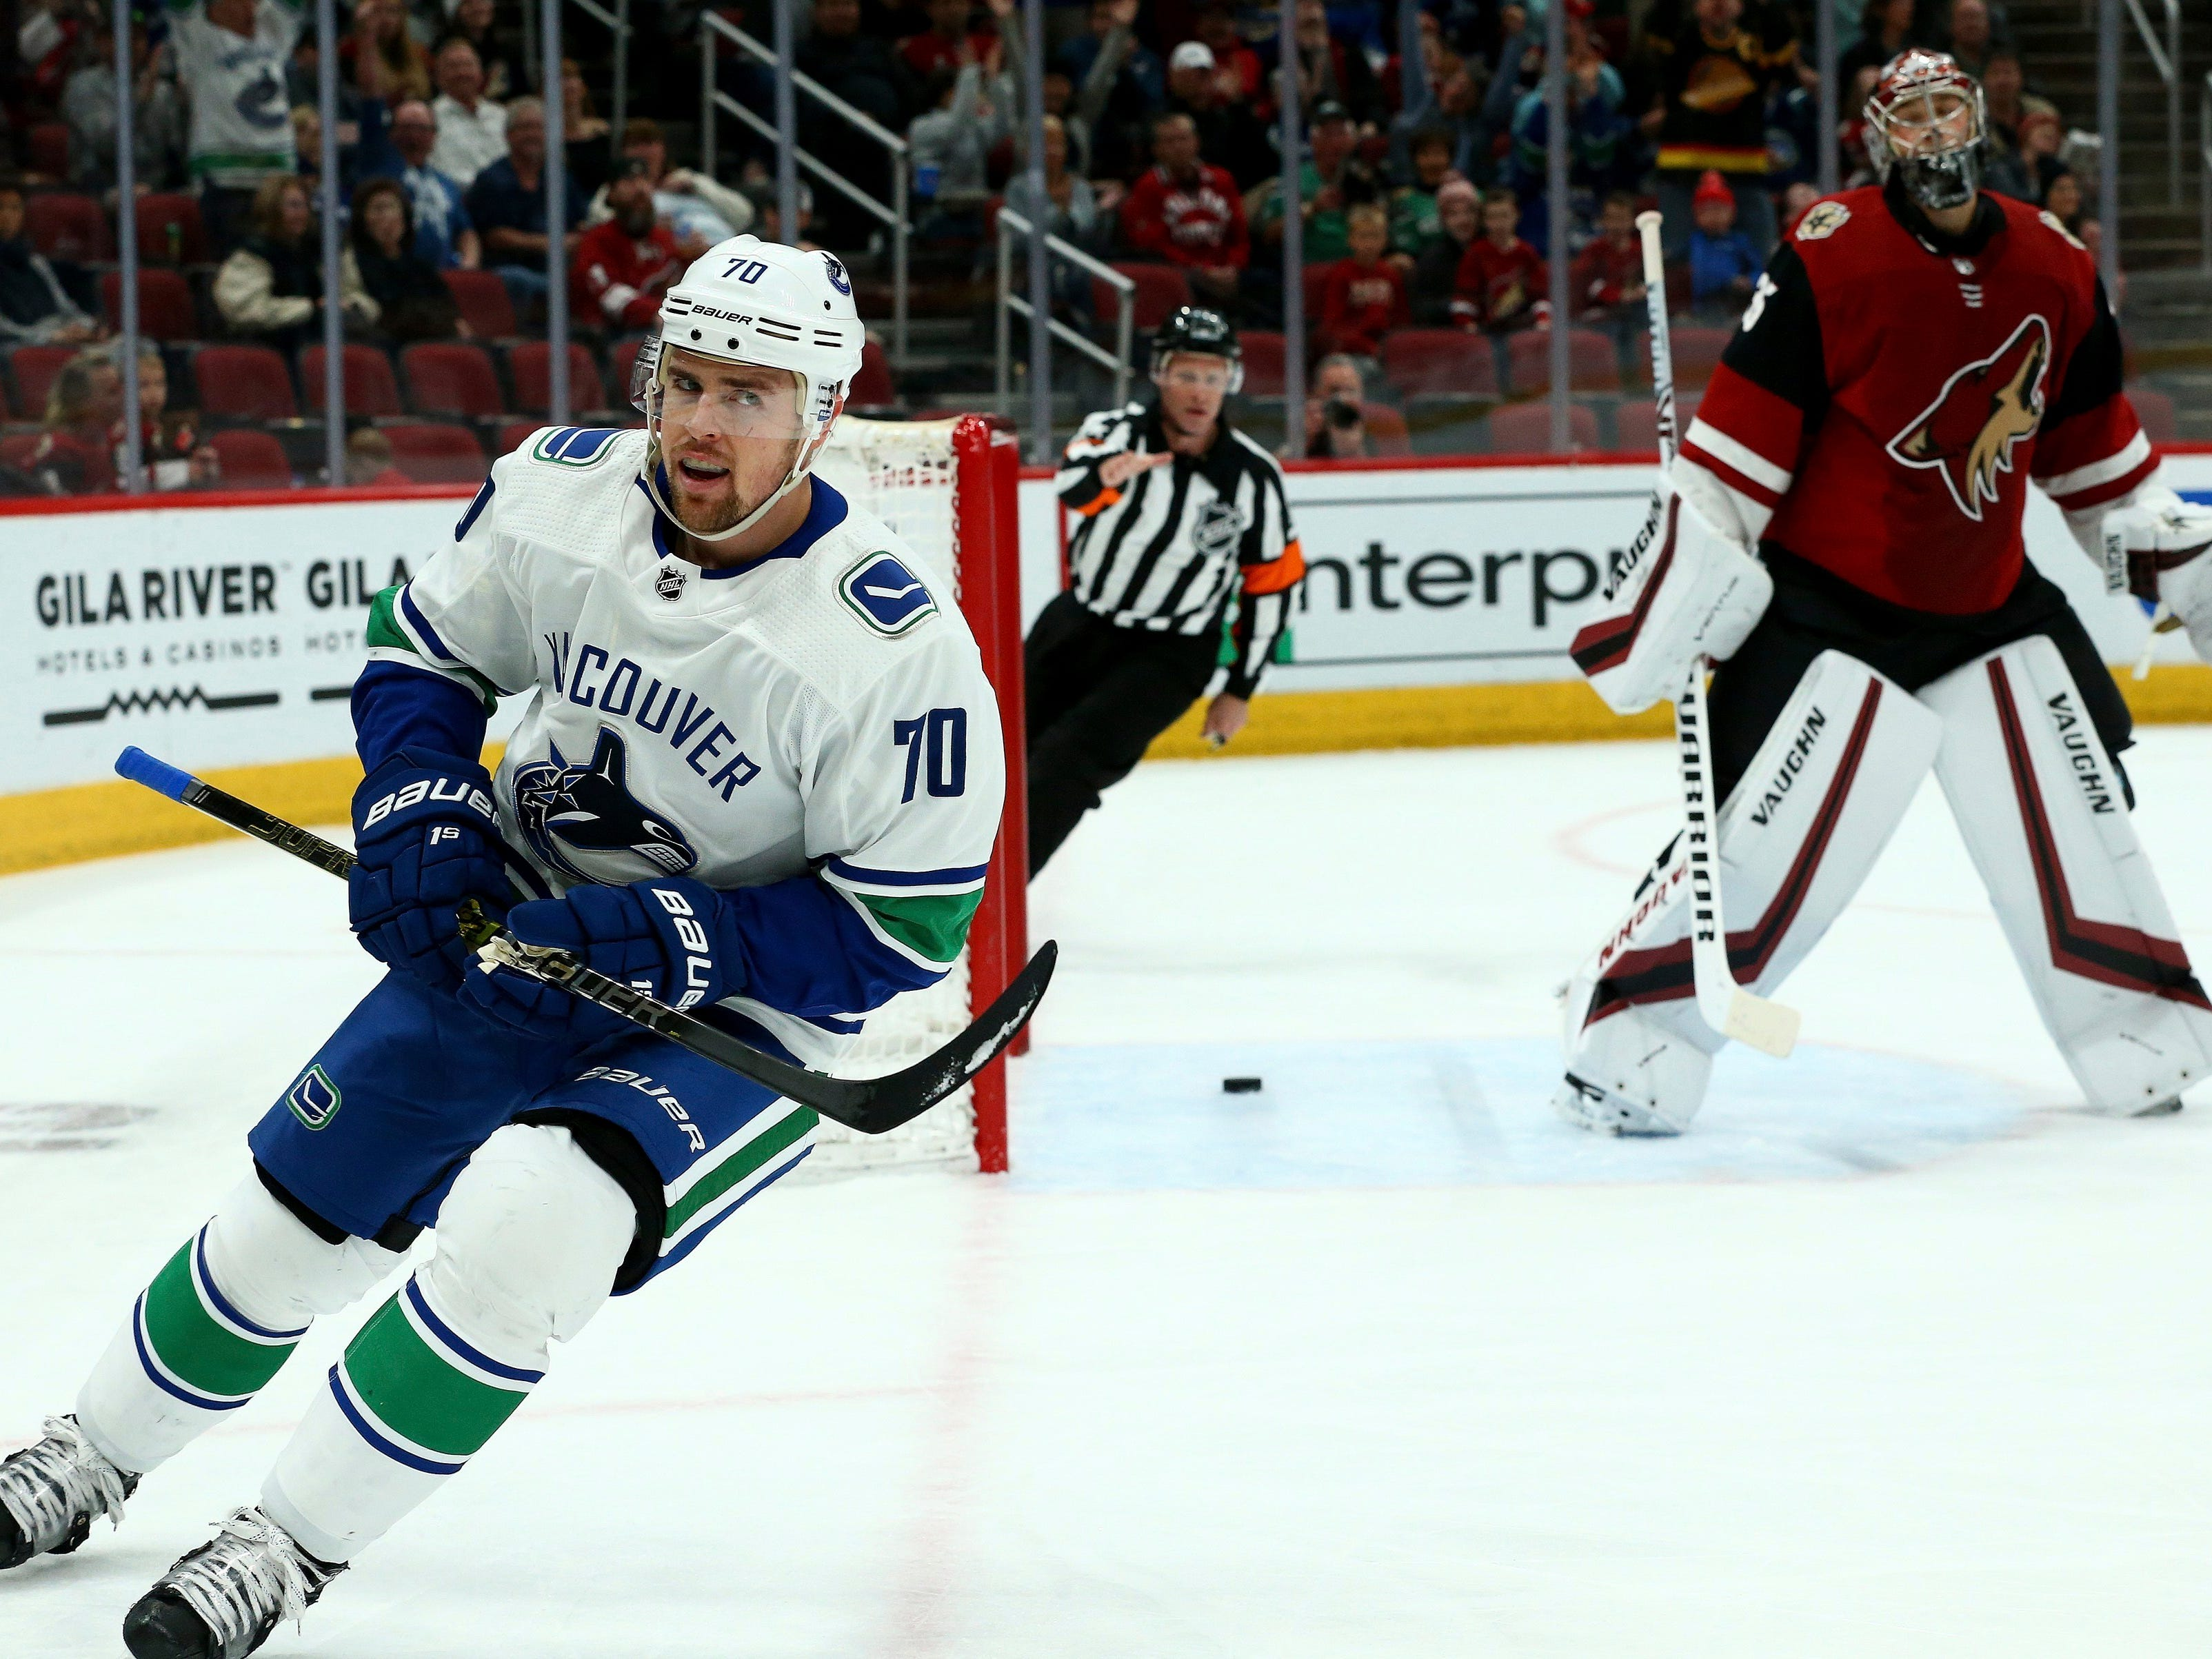 Vancouver Canucks left wing Tanner Pearson (70) skates past after scoring a goal against Arizona Coyotes goaltender Darcy Kuemper, right, during the first period of an NHL hockey game Thursday, Feb. 28, 2019, in Glendale, Ariz.